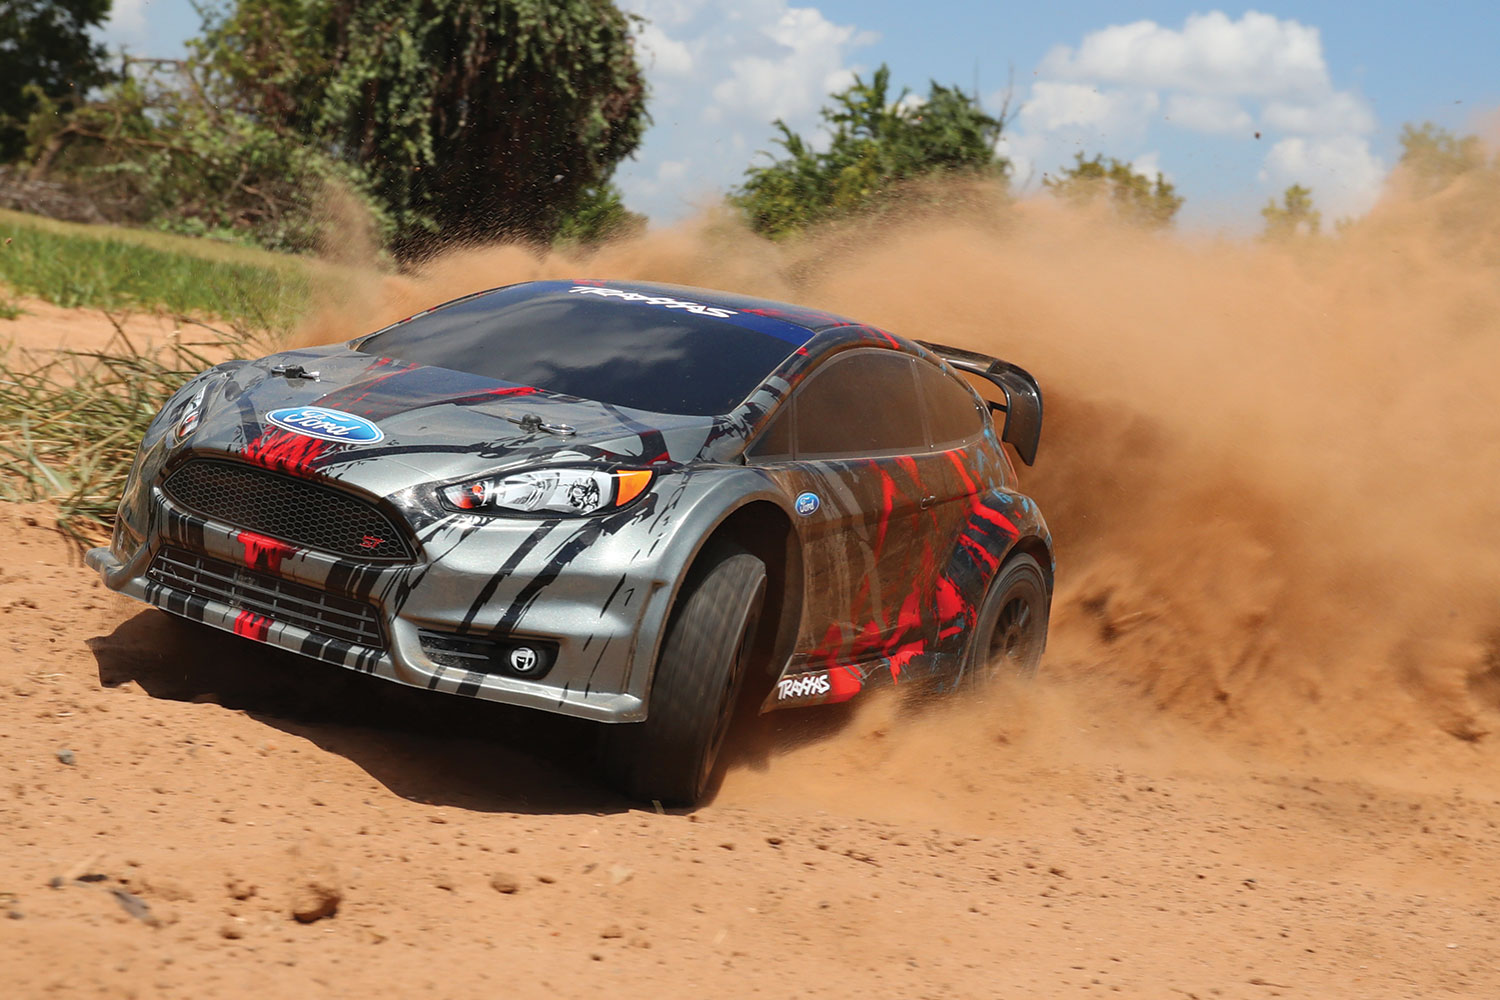 offroad rc car with Rc Ford Fiesta St Rally Traxxas 110 Scale on Rocket Rc 110 F1 Car Kit also Watch further 1101081 bulgarian Tuner Builds Toyota Hilux 6x6 Video further 2016 Merecdes Benz C Class Coupe Review First Drive Video 41218 as well 416bhp Peugeot 206 Gti Turbo.